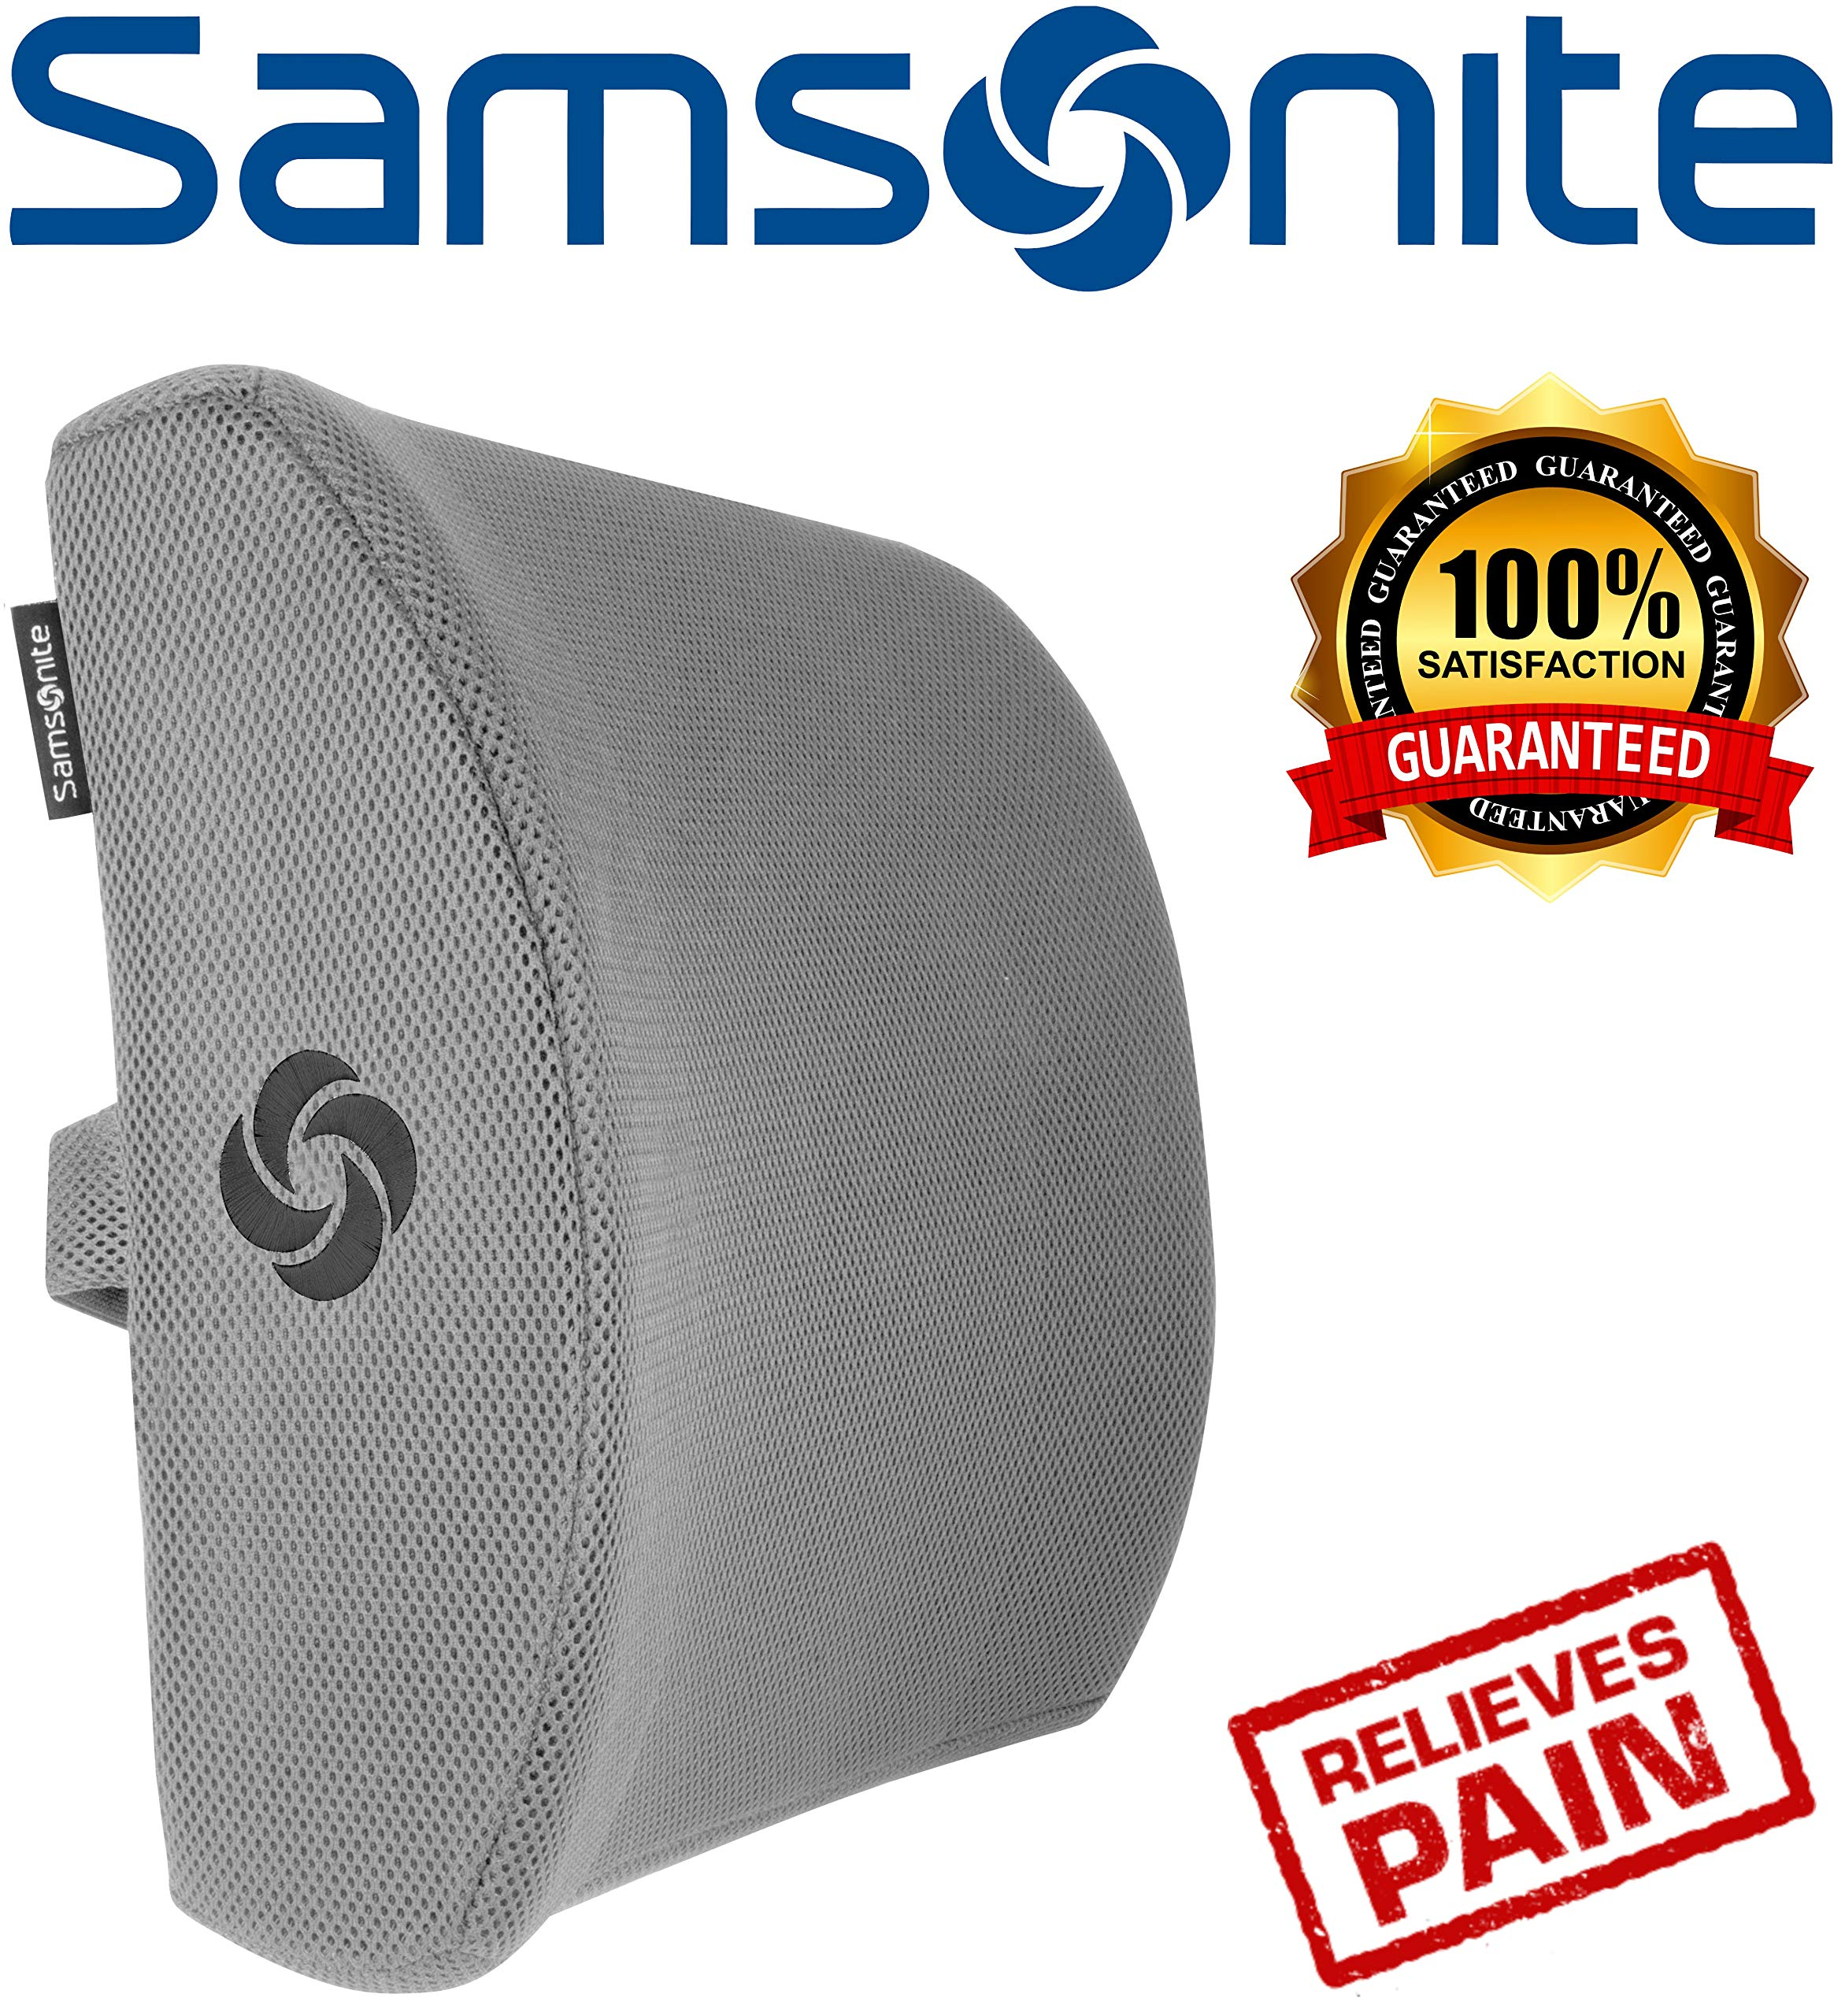 Samsonite SA5244 - Ergonomic Lumbar Support Pillow - Helps Relieve Lower Back Pain - 100% Pure Memory Foam - Improves Posture - Fits Most Seats - Breathable Mesh - Washable Cover - Adjustable Strap